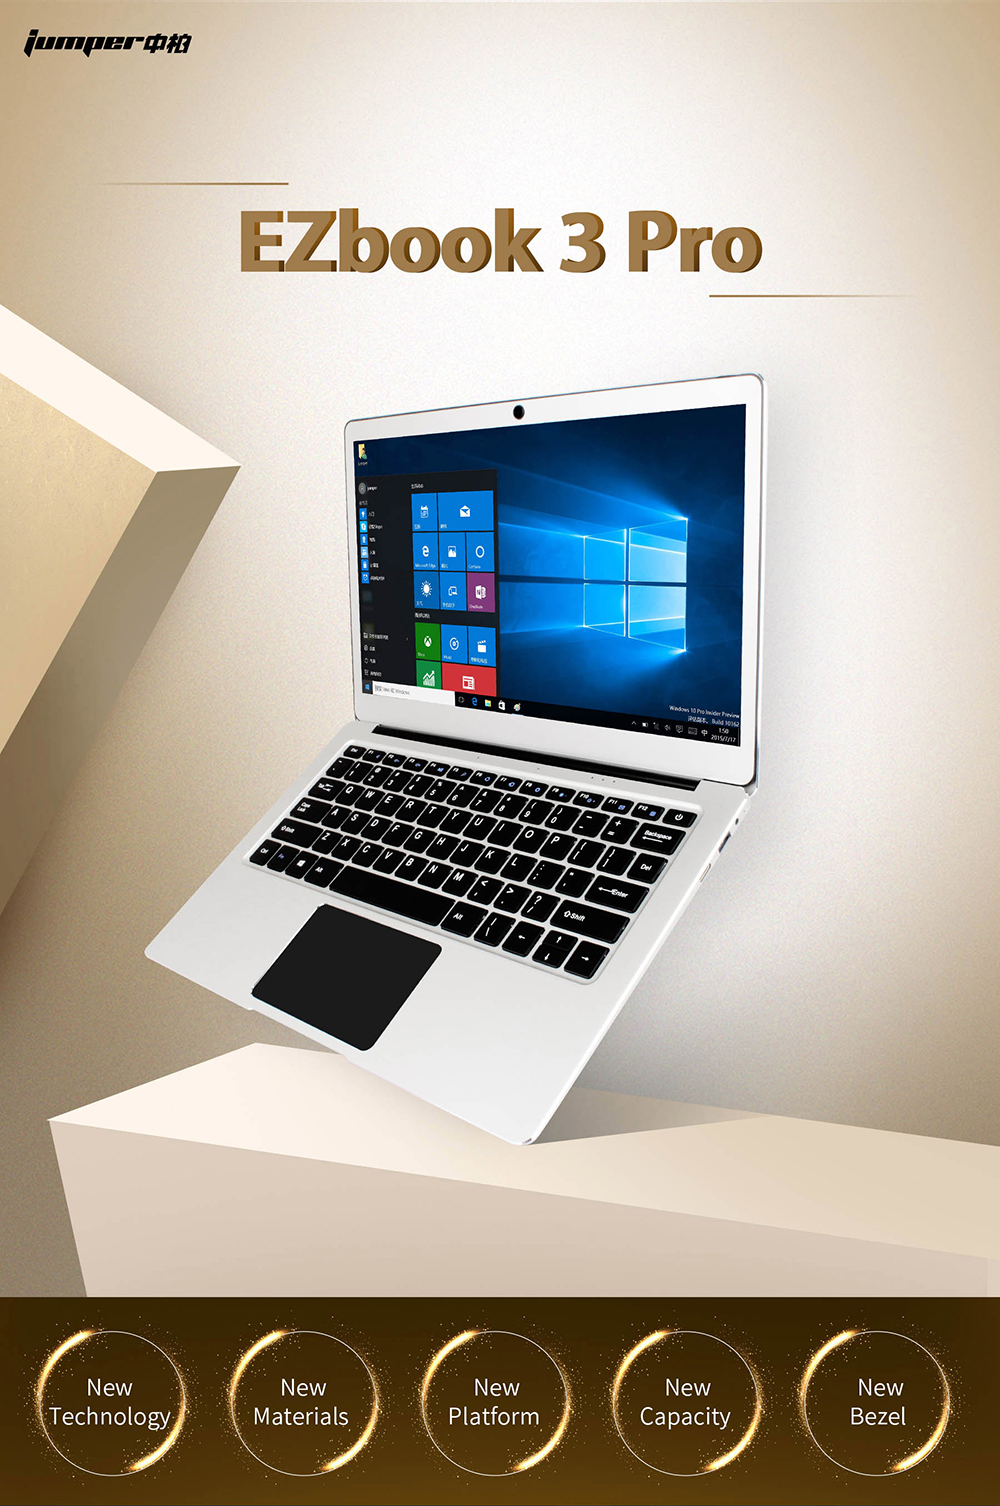 1  Jumper EZbook three Professional laptops 13.three Inch tablets Intel Apollo N3450 Quad Core 6GB DDR3 64GB eMMC Home windows 10 pocket book computador HTB1LnpCRXXXXXcuXVXXq6xXFXXXF